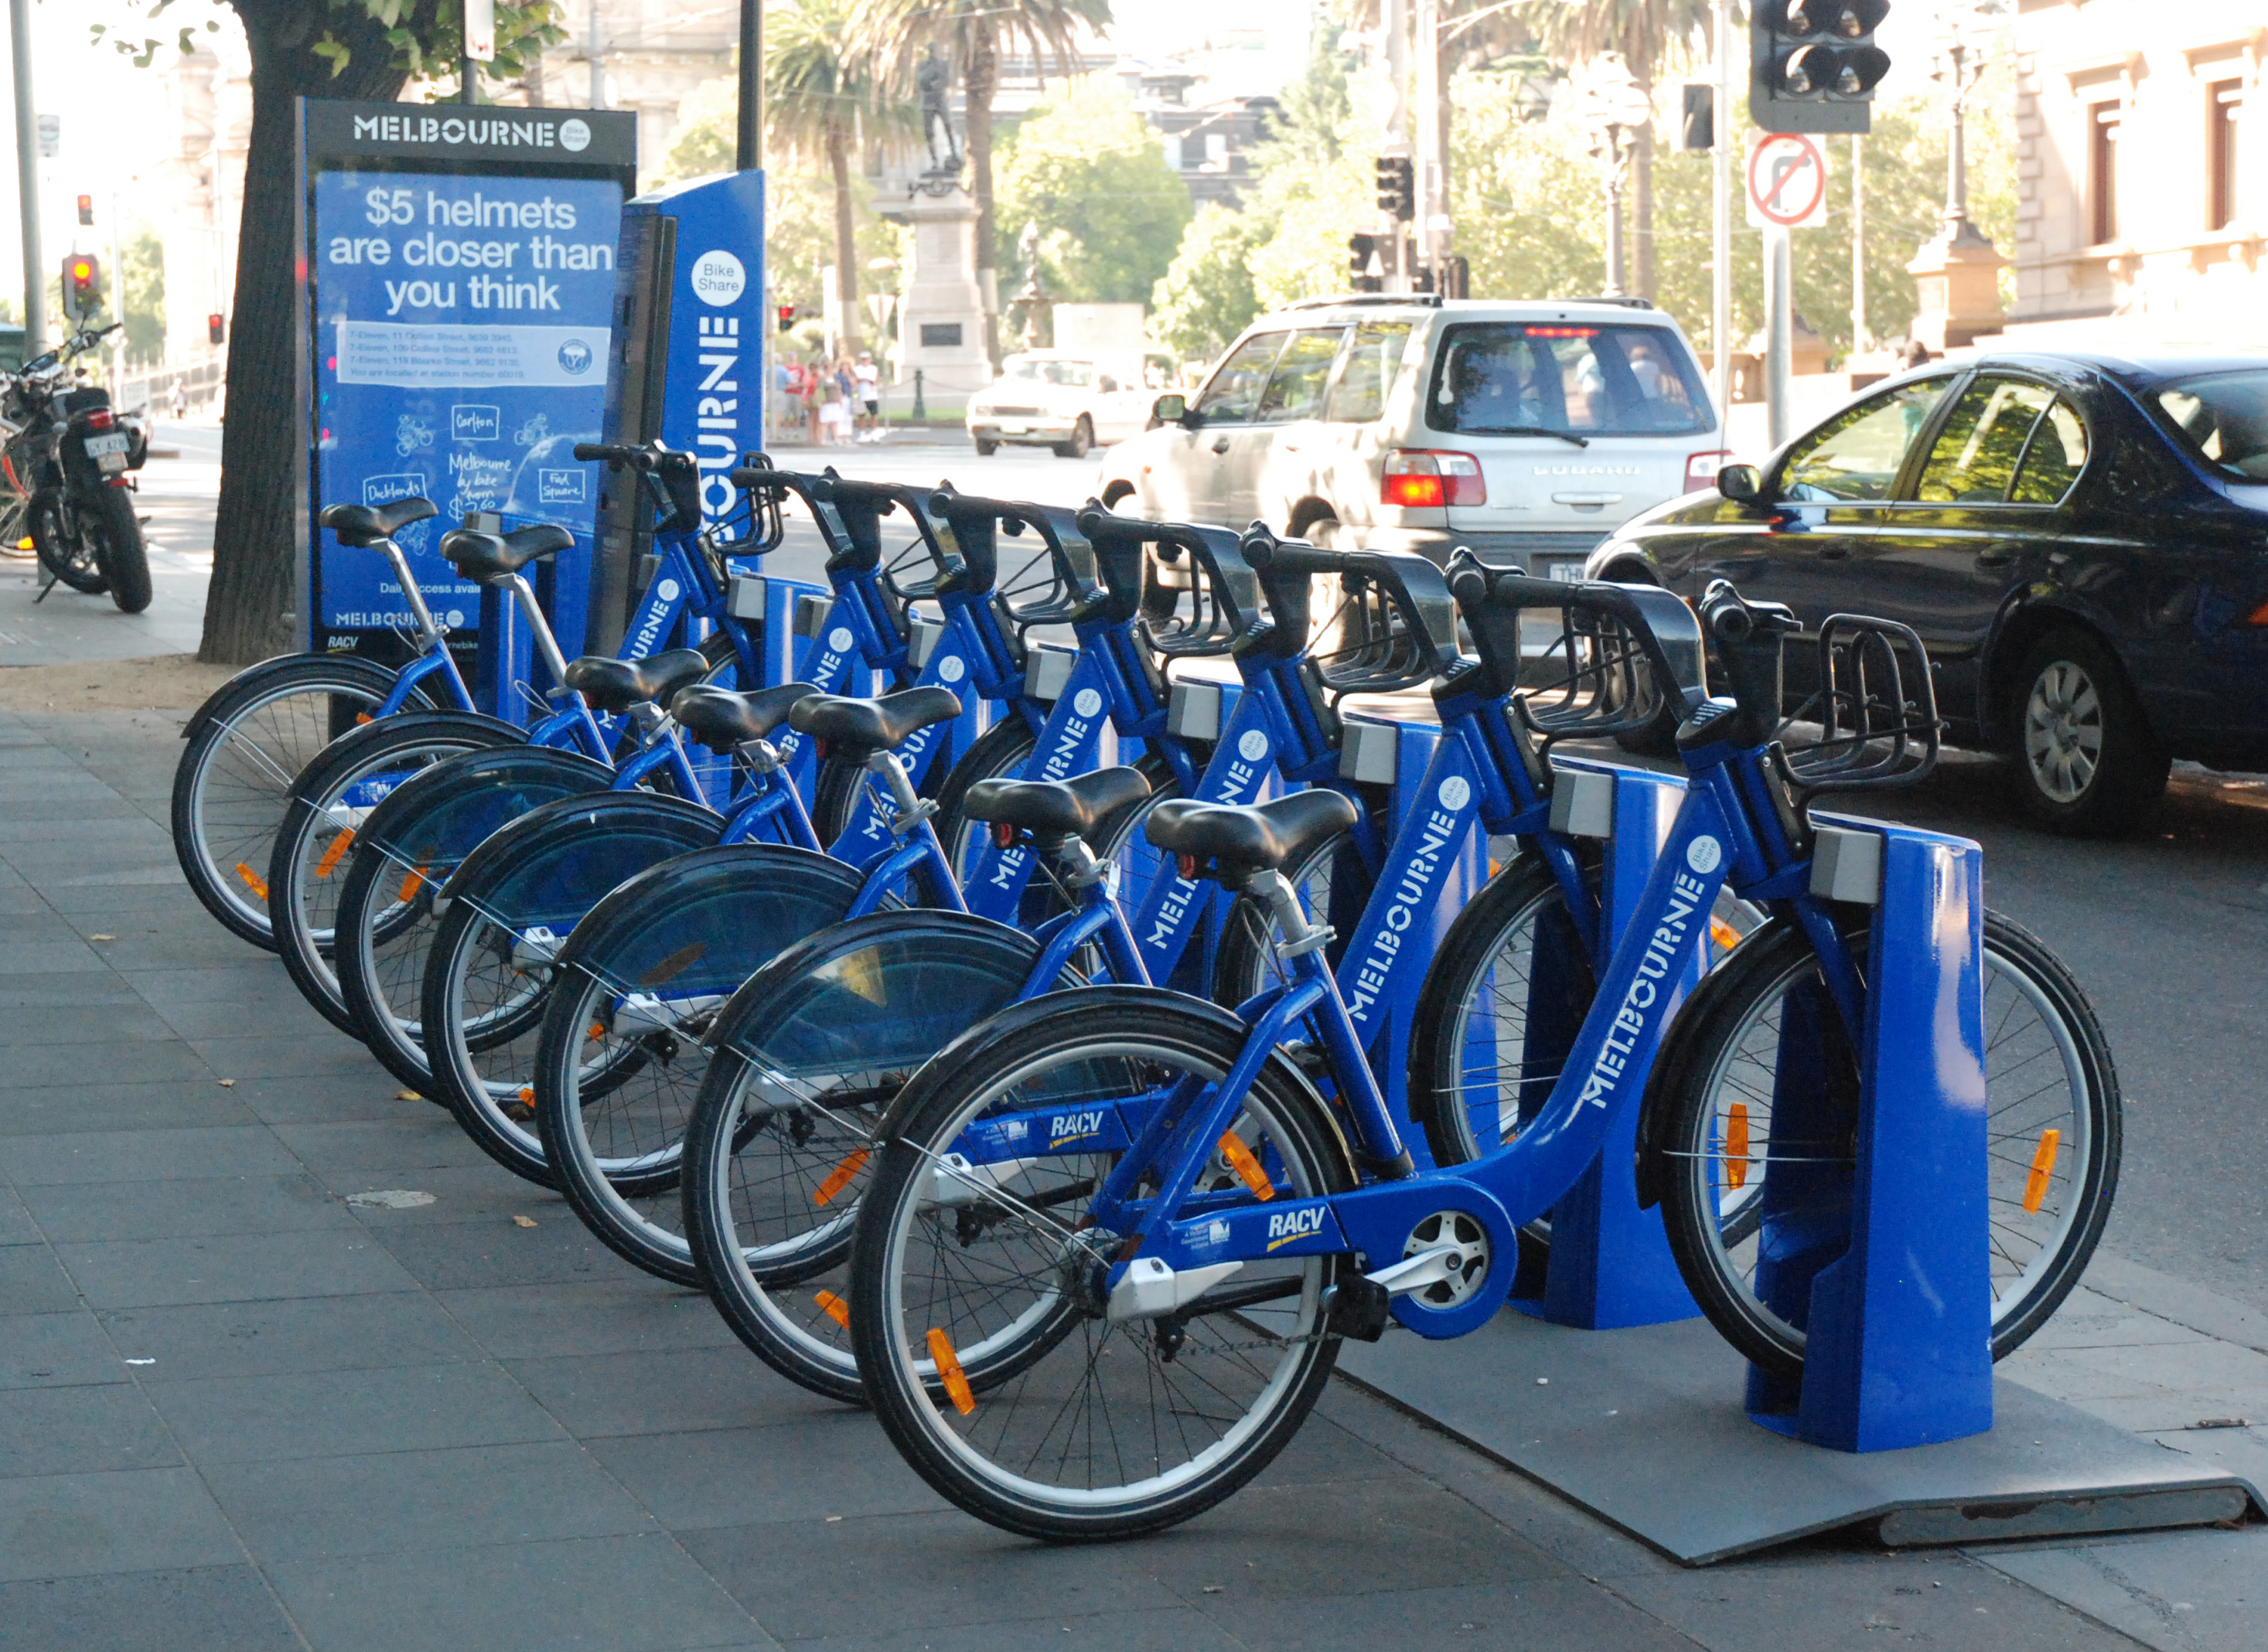 File:Melbourne City Bikes.JPG - Wikimedia Commons